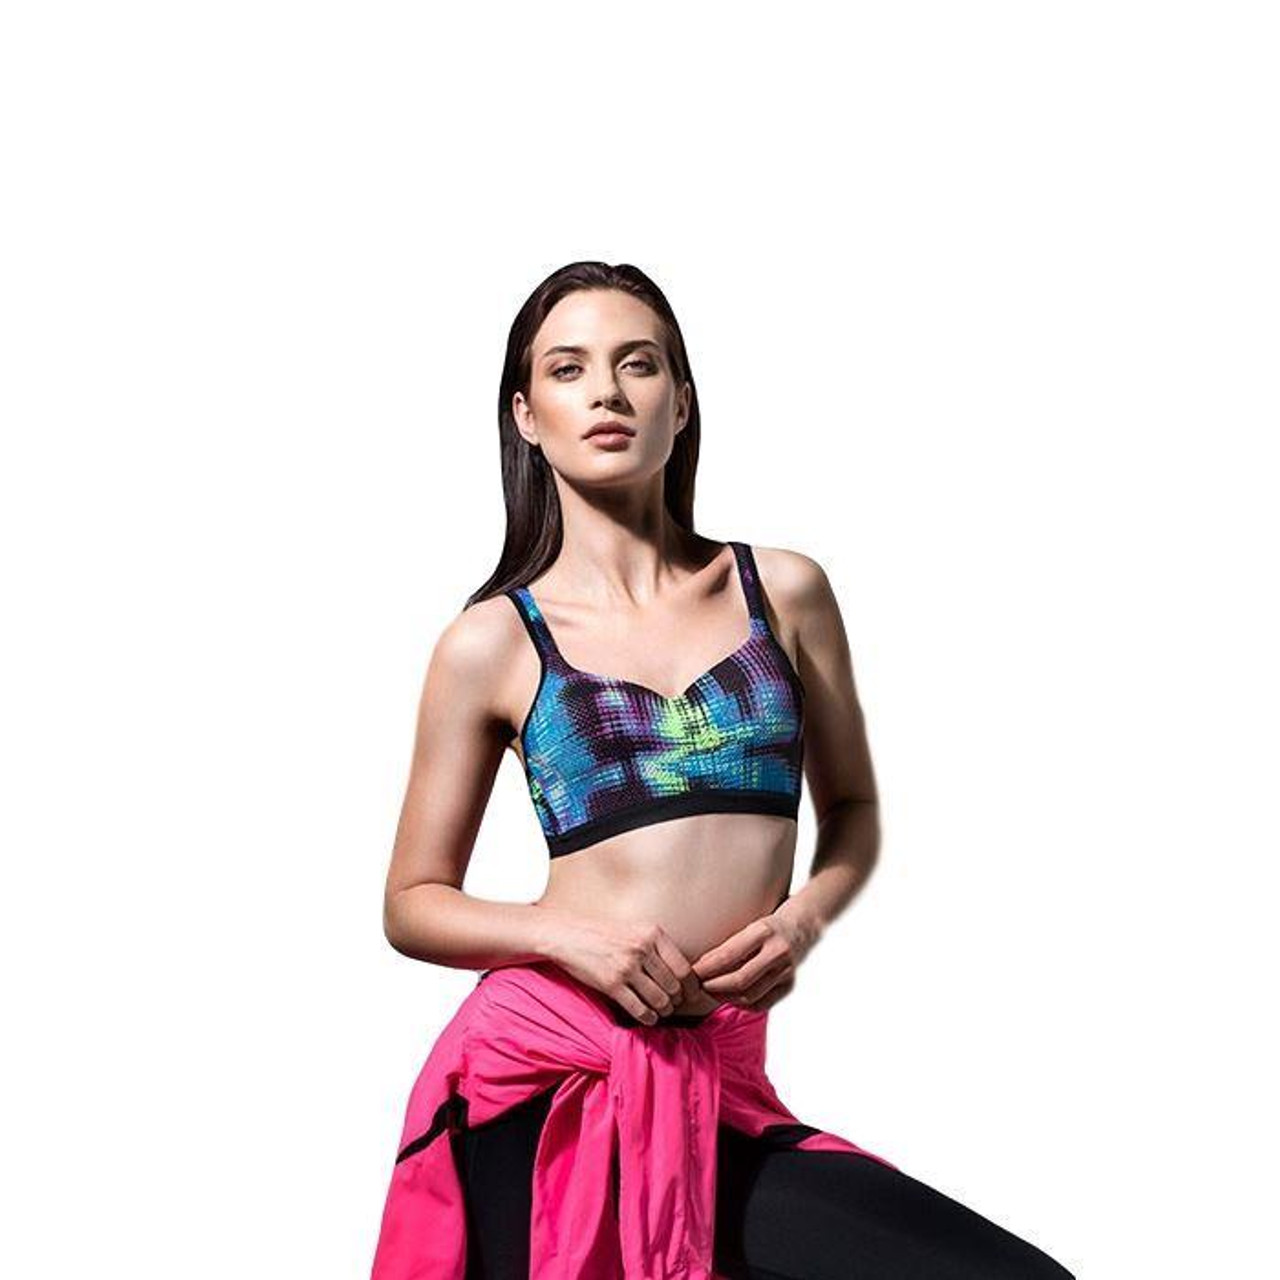 EX M/&S Marks And Spencer Cotton Rich Medium Impact Non-Wired Sports Bra